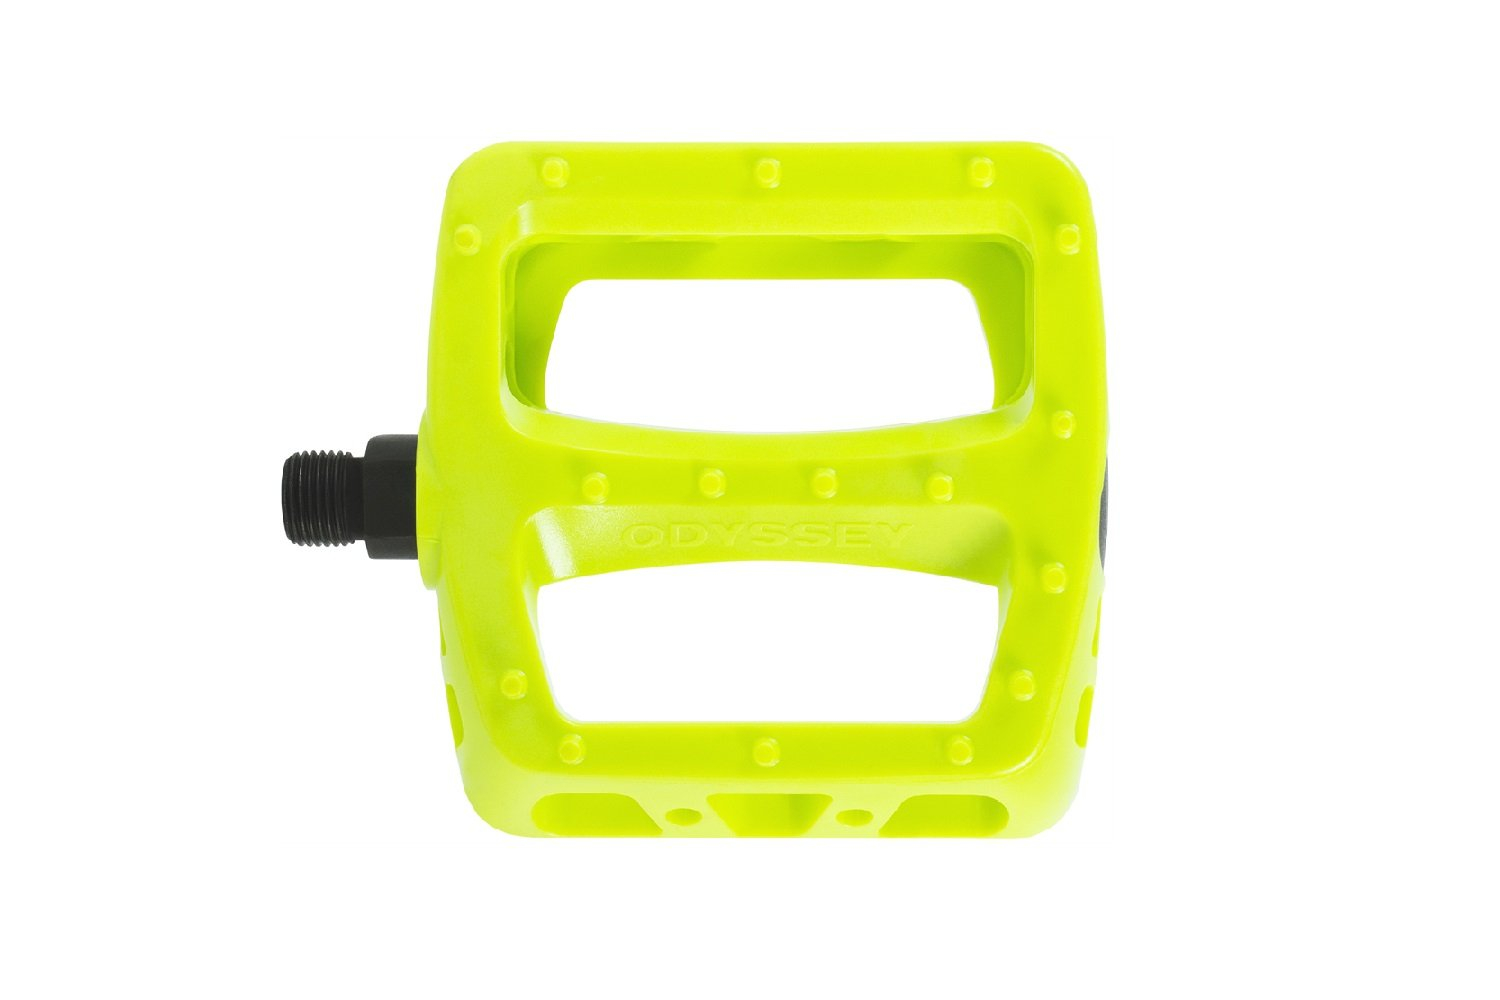 Odyssey Twisted PC 9/16 Pedali | Colore Fluo Yellow